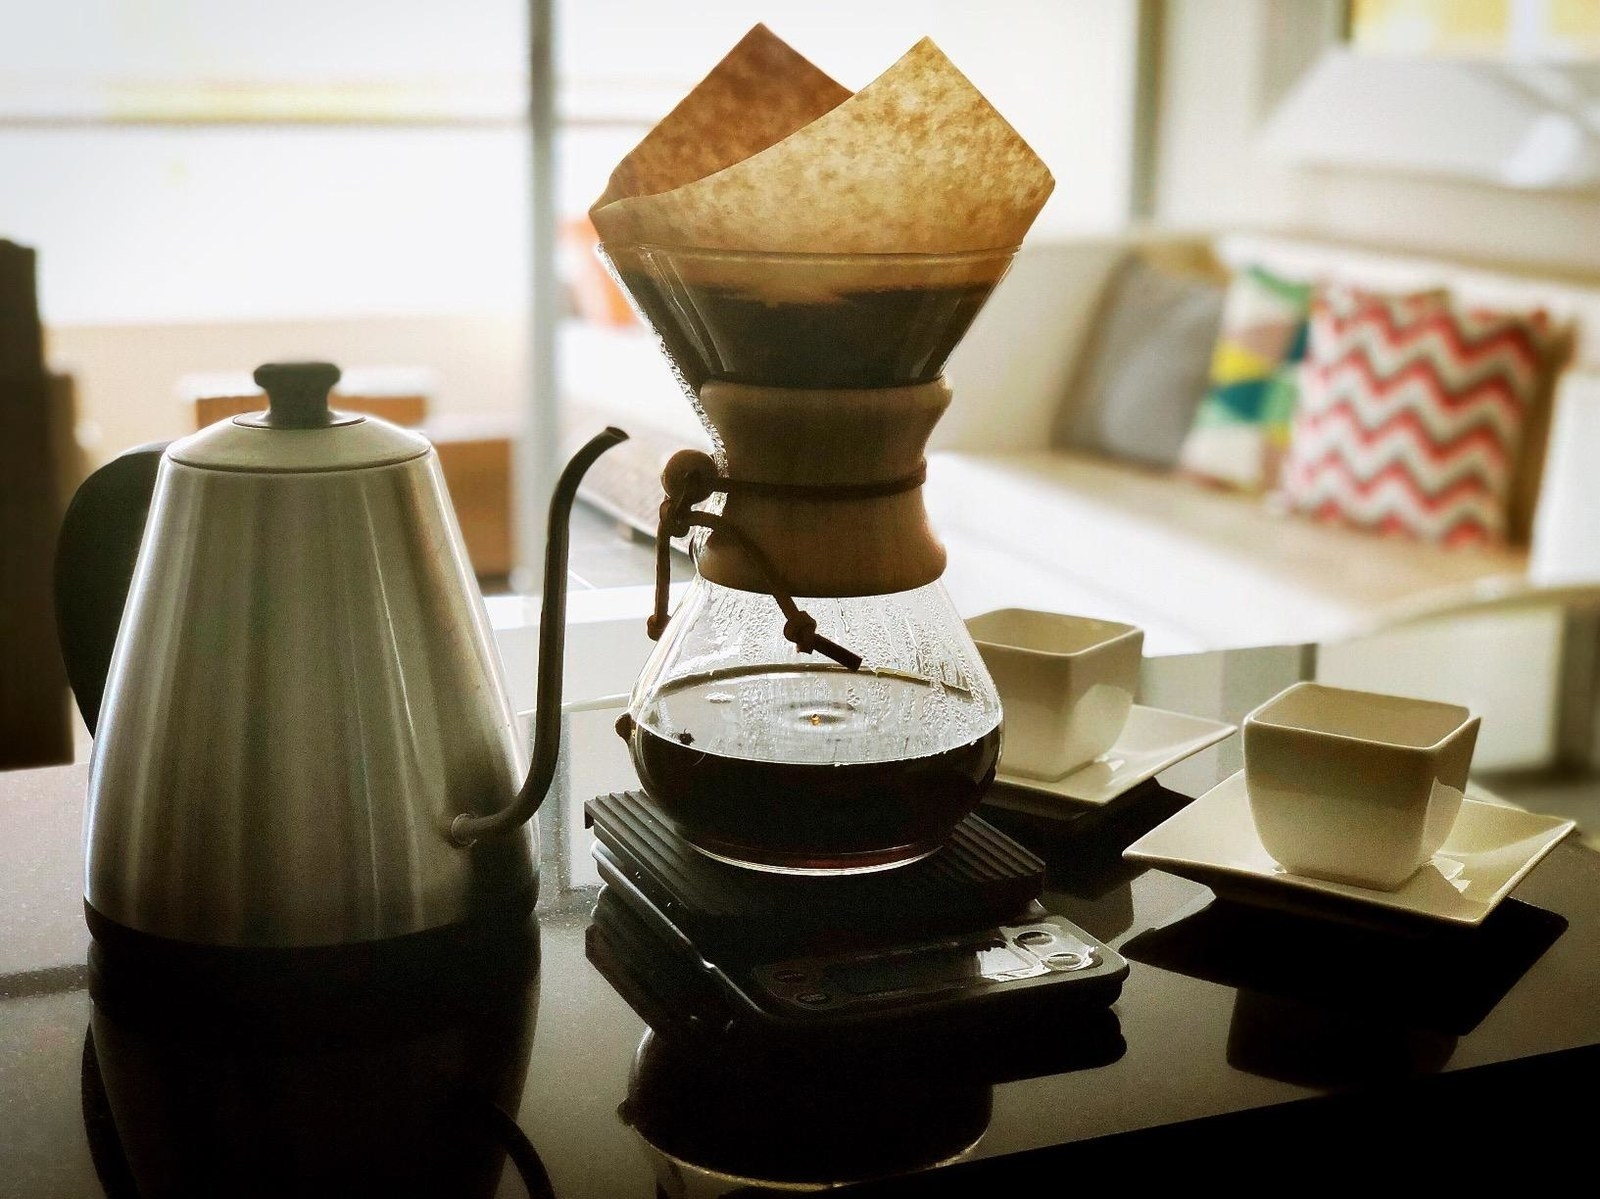 Pour-over coffee being made in the hourglass-shaped Chemex